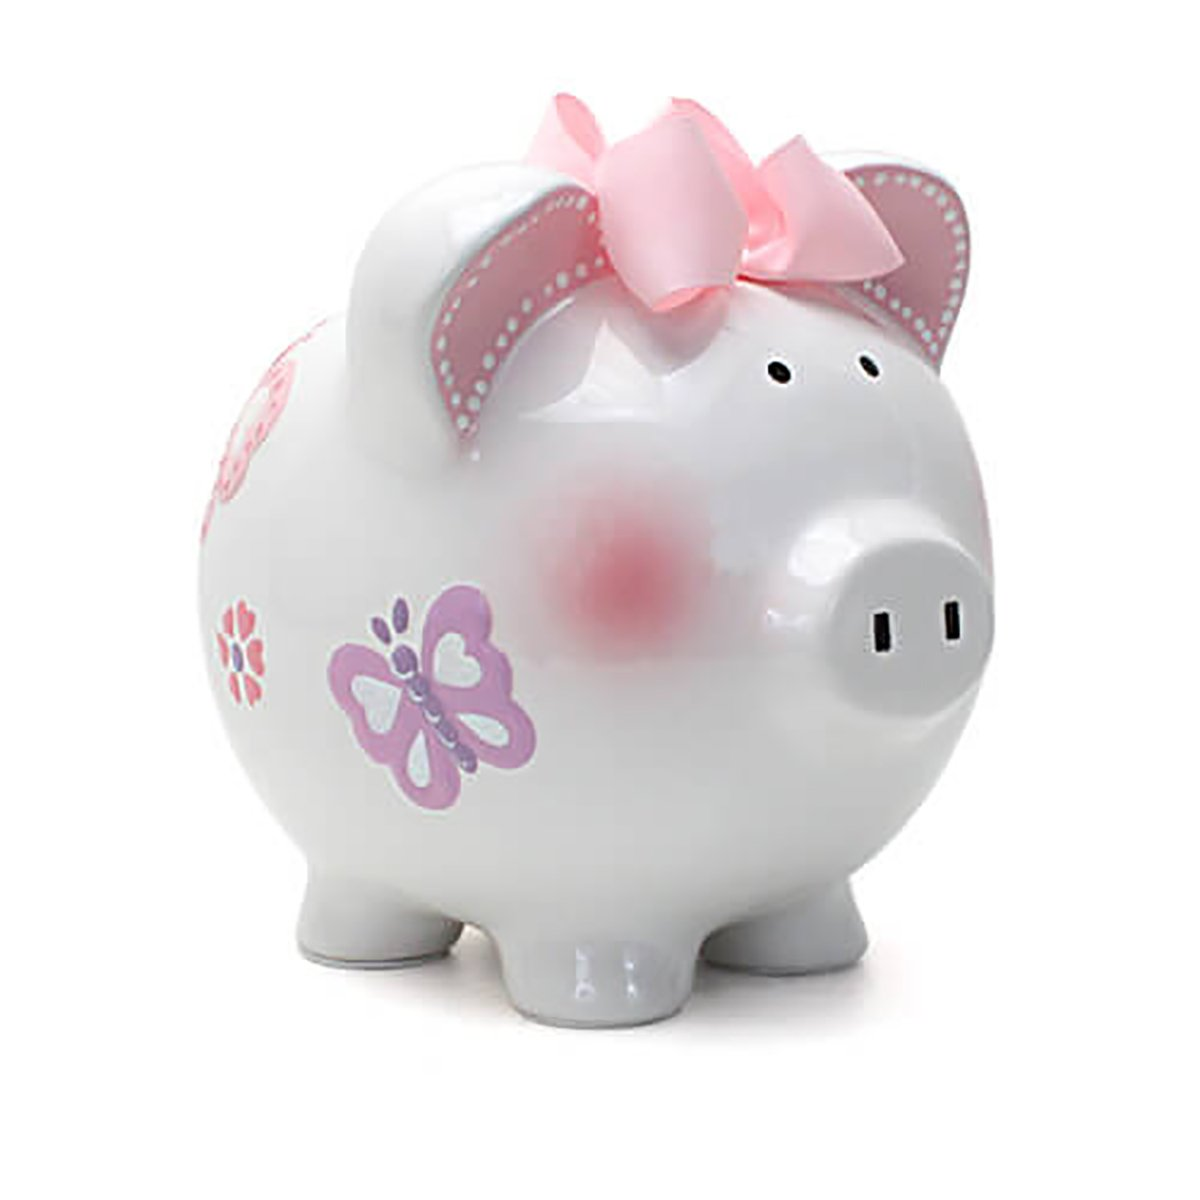 Top 10 Best Piggy Banks For Kids (2020 Reviews & Buying Guide) 6